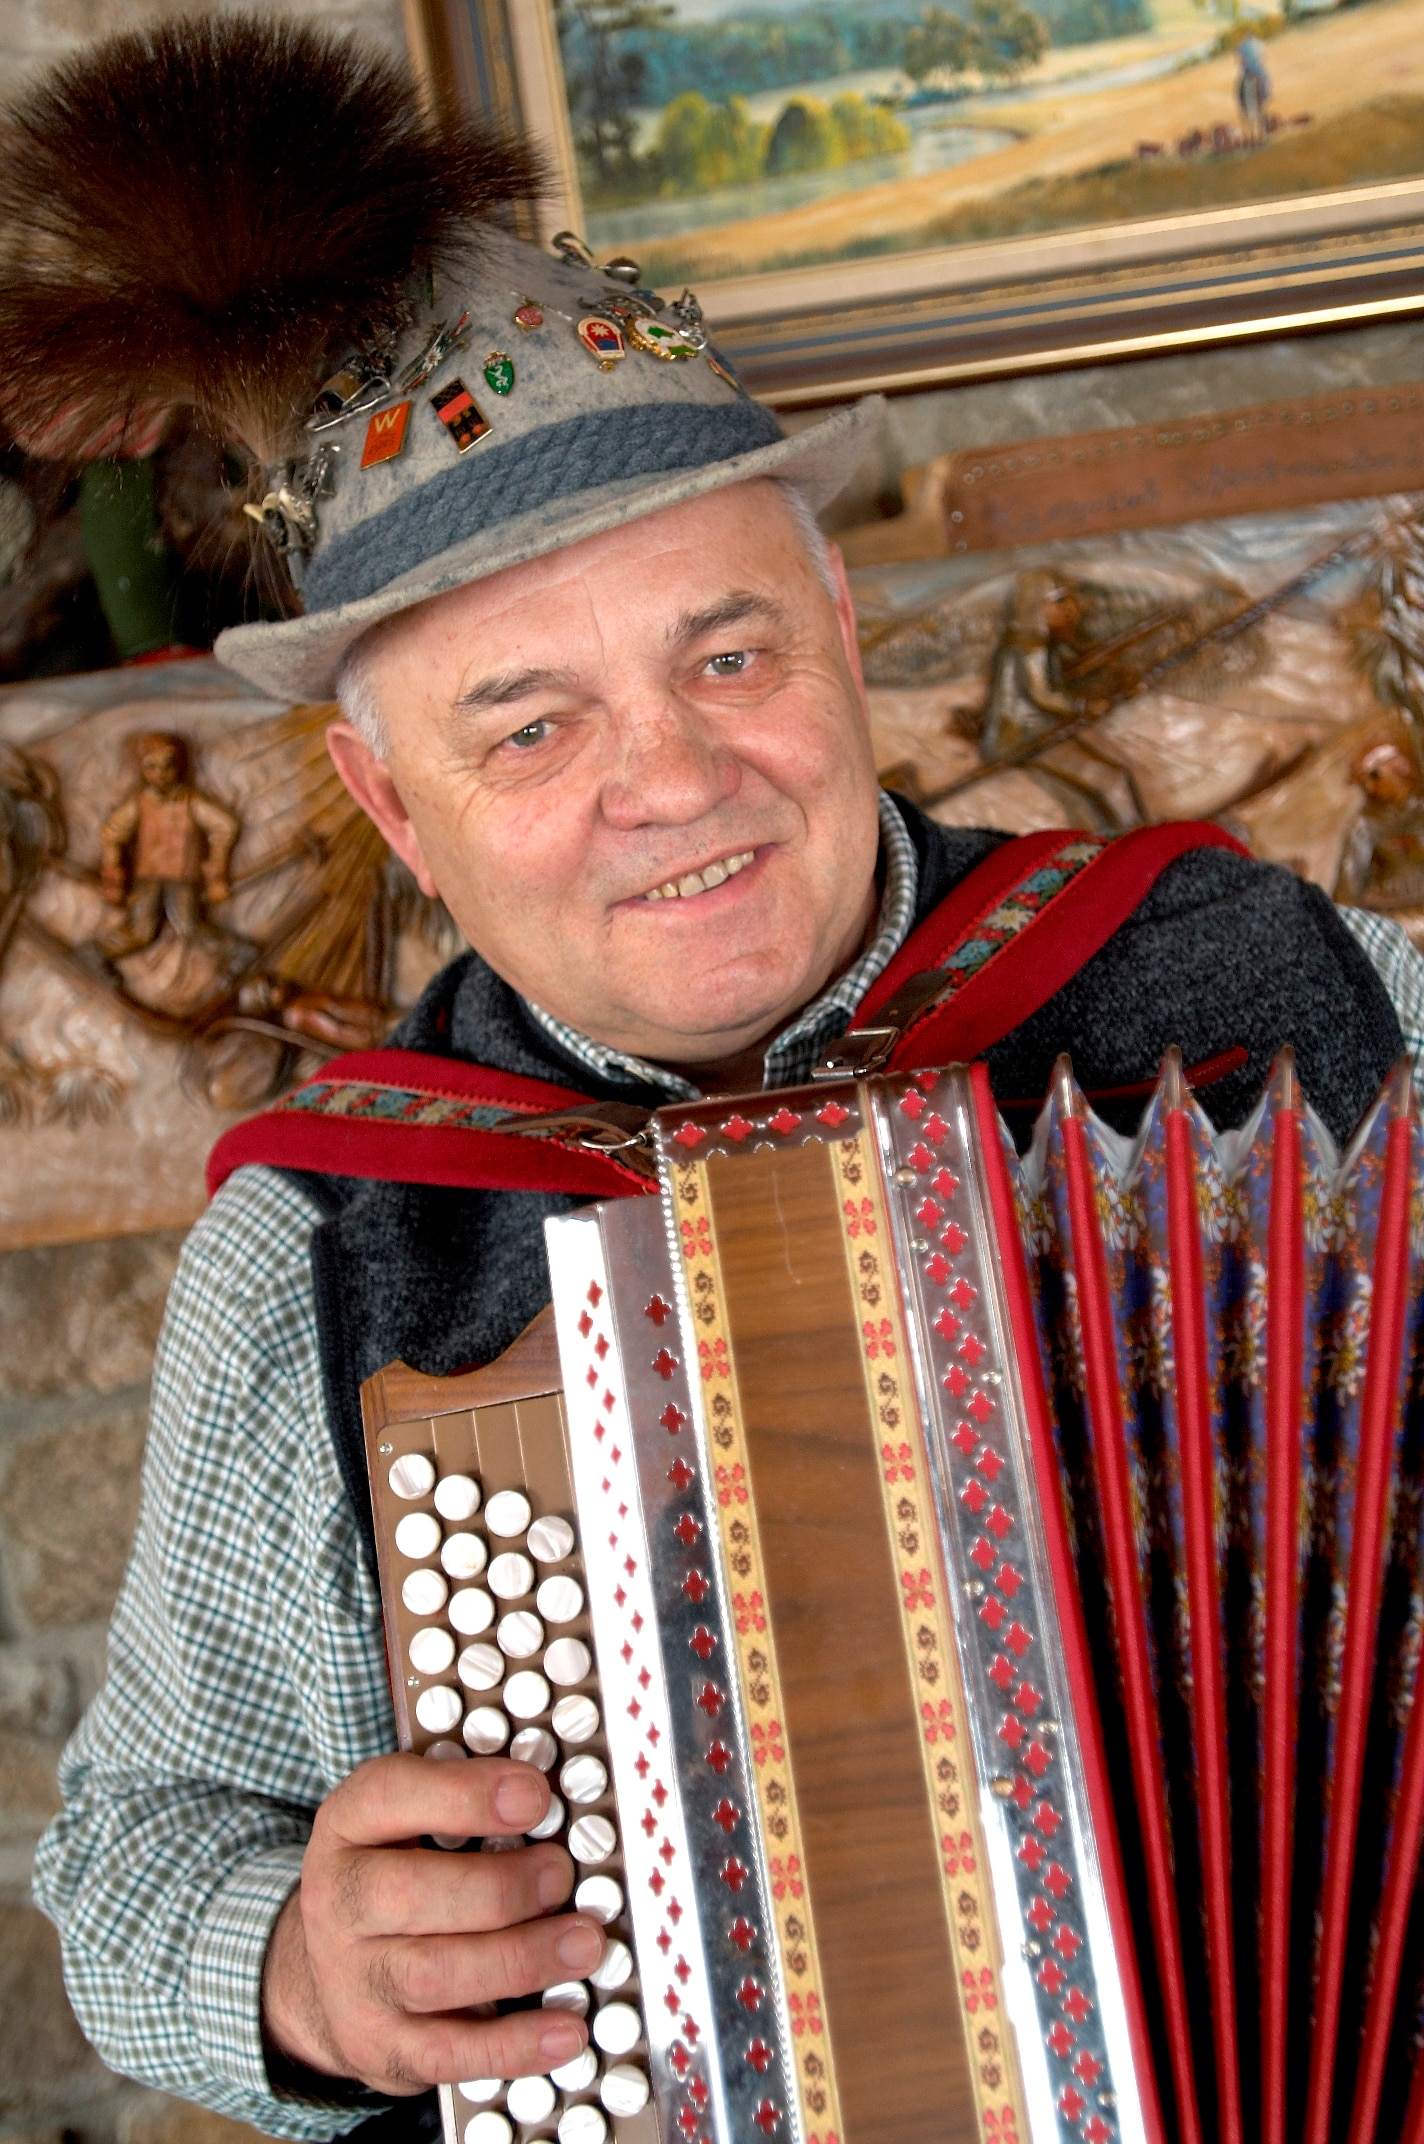 Hans Grimus still plays the accordion for his guests